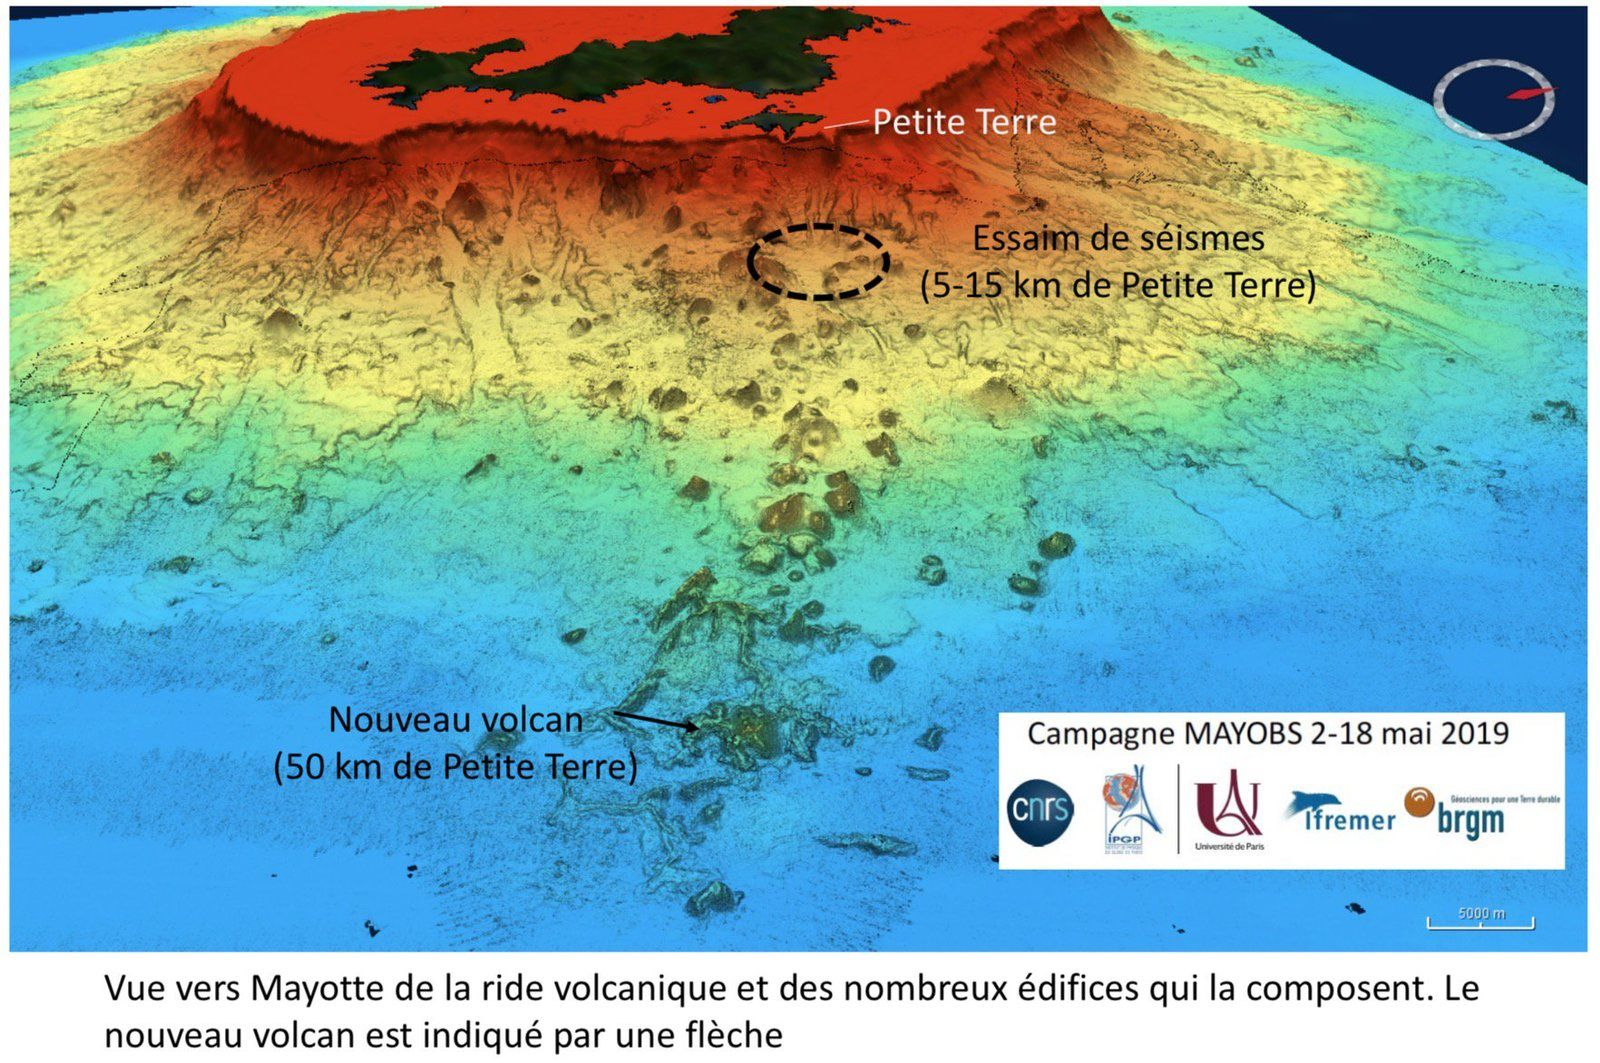 Mayotte - situation of the island (submerged and emerged parts) and the volcanic ridge with its buildings - the new volcano is signposted - Doc. MAYOBS campaign from 02 to 18.05.2019 - CNRS / IPGP / IFREMER / BRGM / Univ Paris